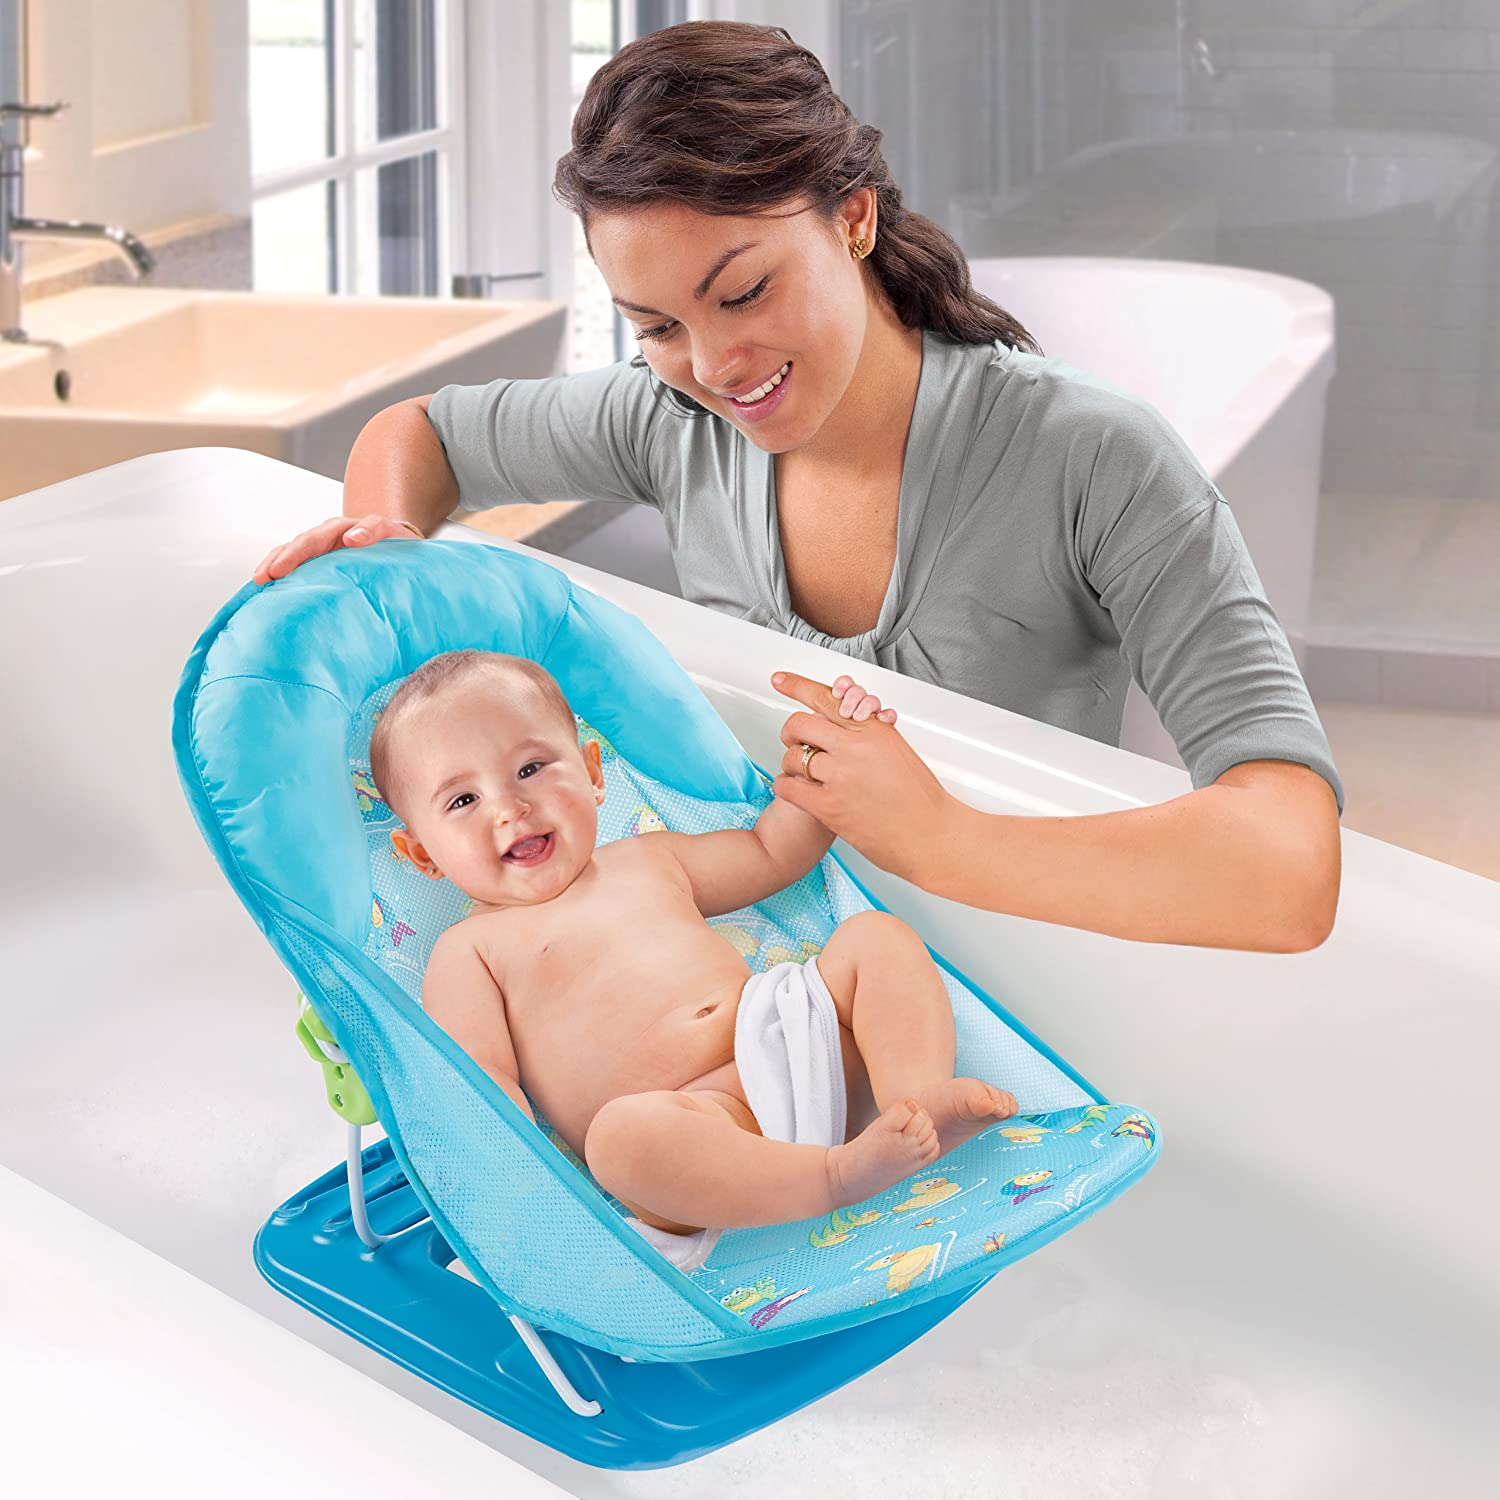 summer infant baby bath bather chair seat blue adjustable 18500 folding new fs ebay. Black Bedroom Furniture Sets. Home Design Ideas